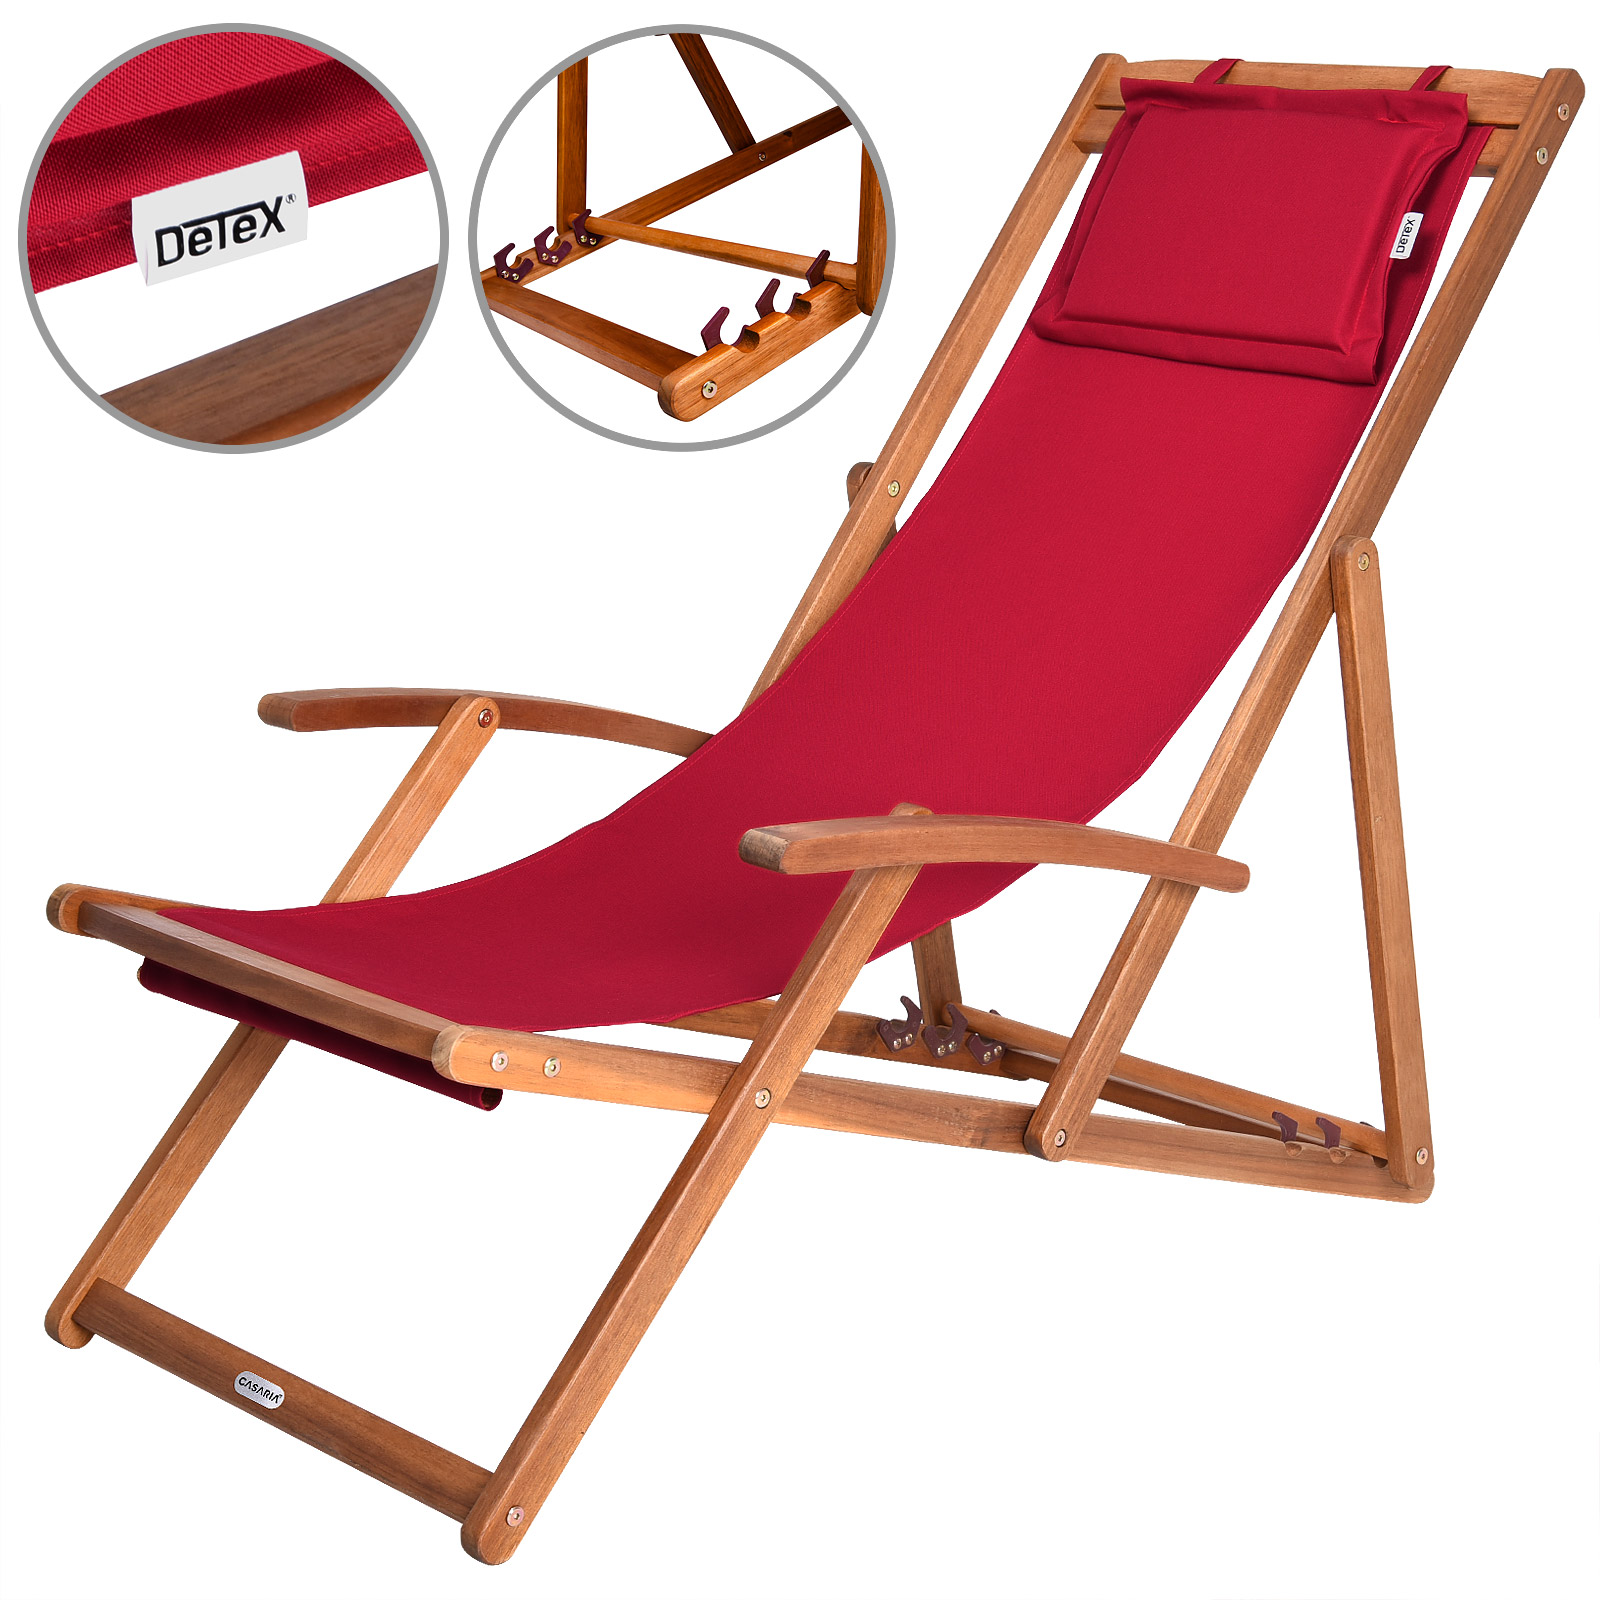 wooden folding deck chairs garden deckchair furniture. Black Bedroom Furniture Sets. Home Design Ideas